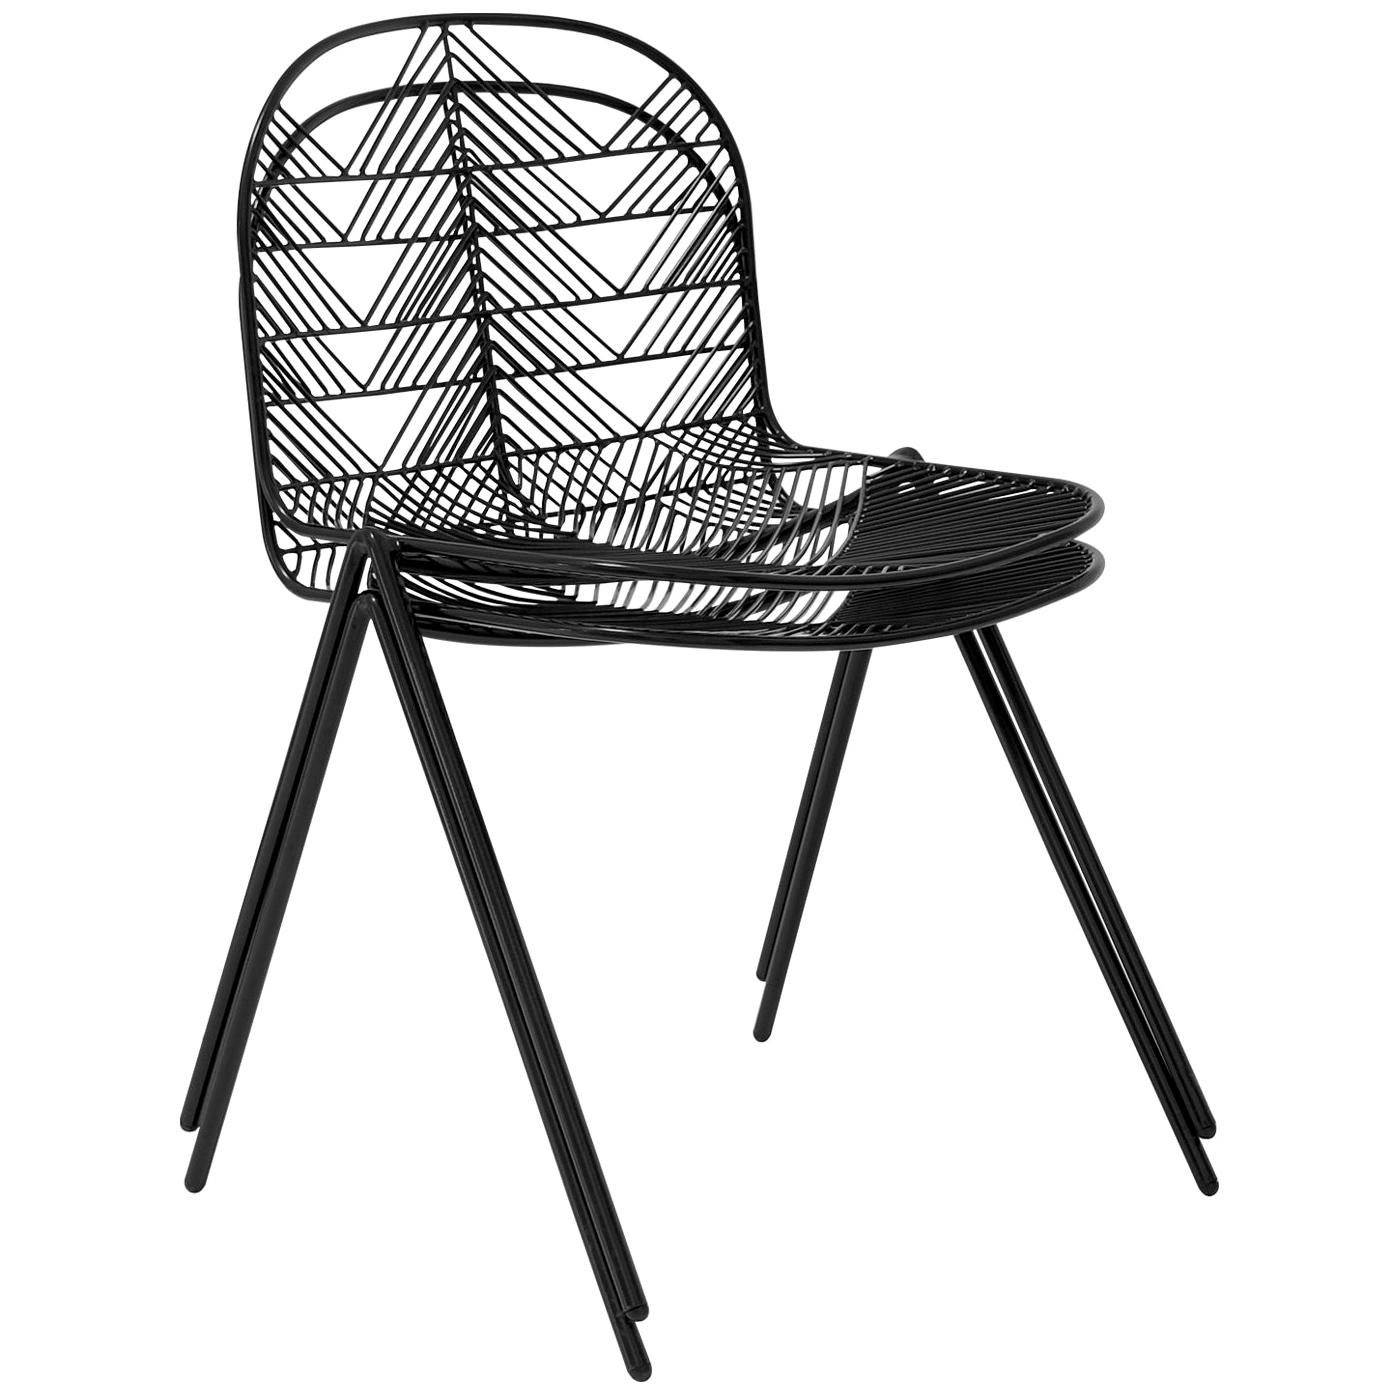 Minimalist Stacking Wire Chair, Modern Side Chair by Bend Goods in Black